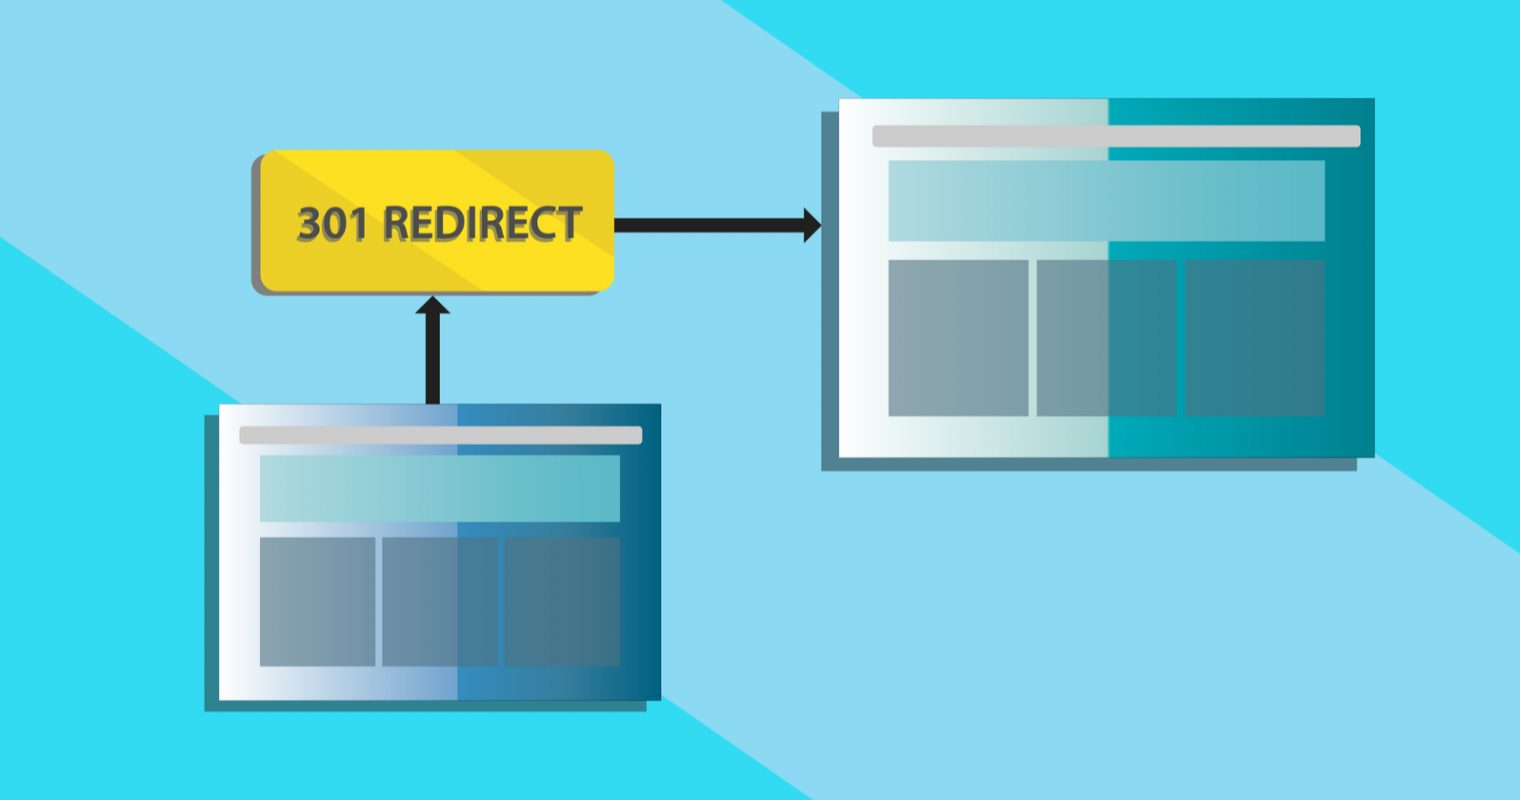 6 Redirect Mistakes That Can Wreak Havoc on Your Site's Traffic